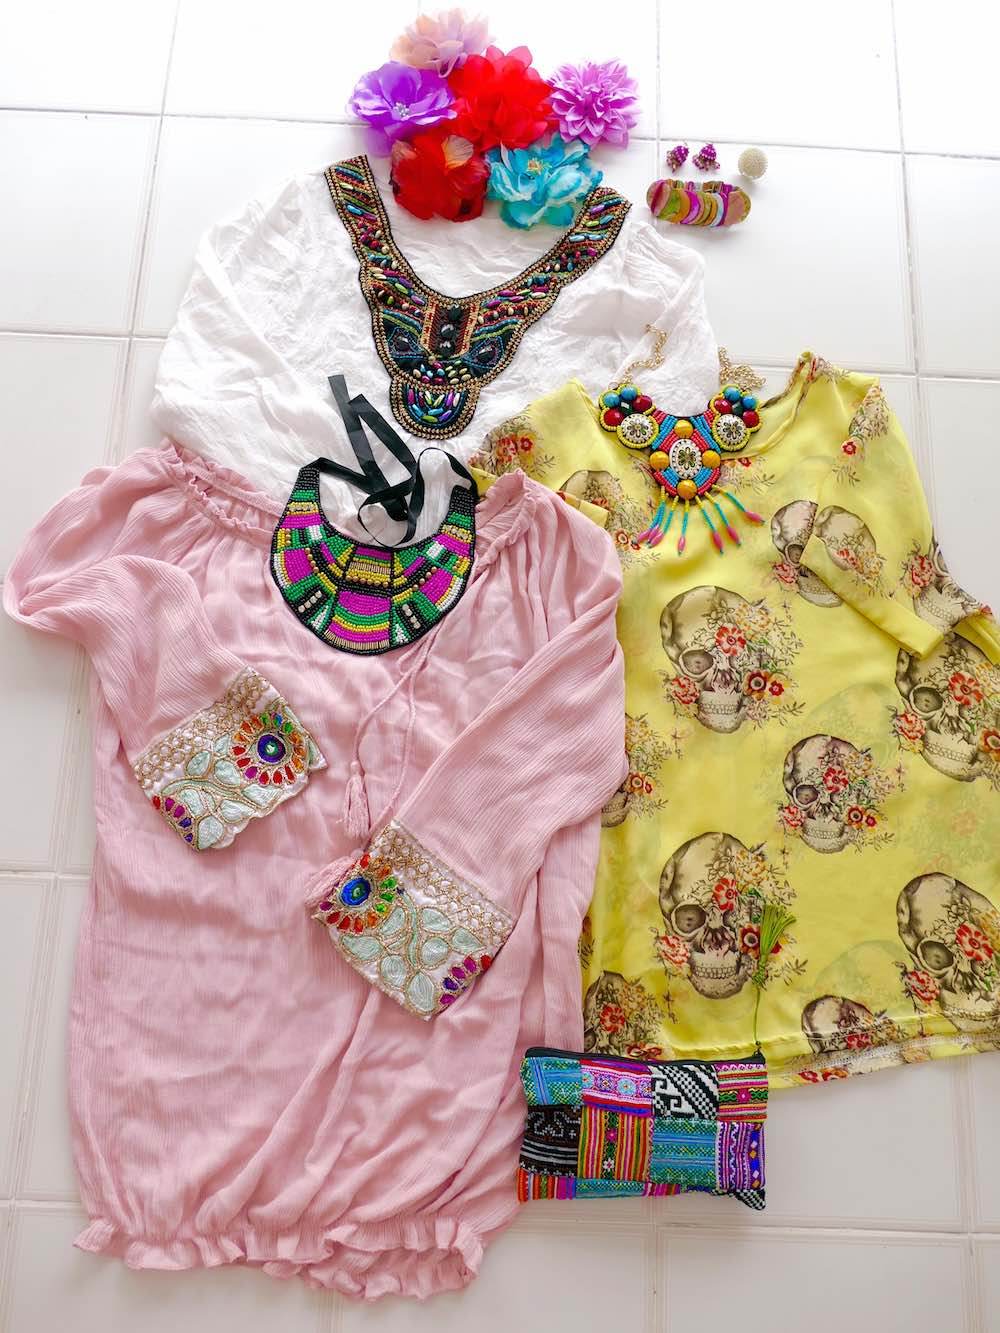 Ethnic tops and accessories in flatlay |curlytraveller.com